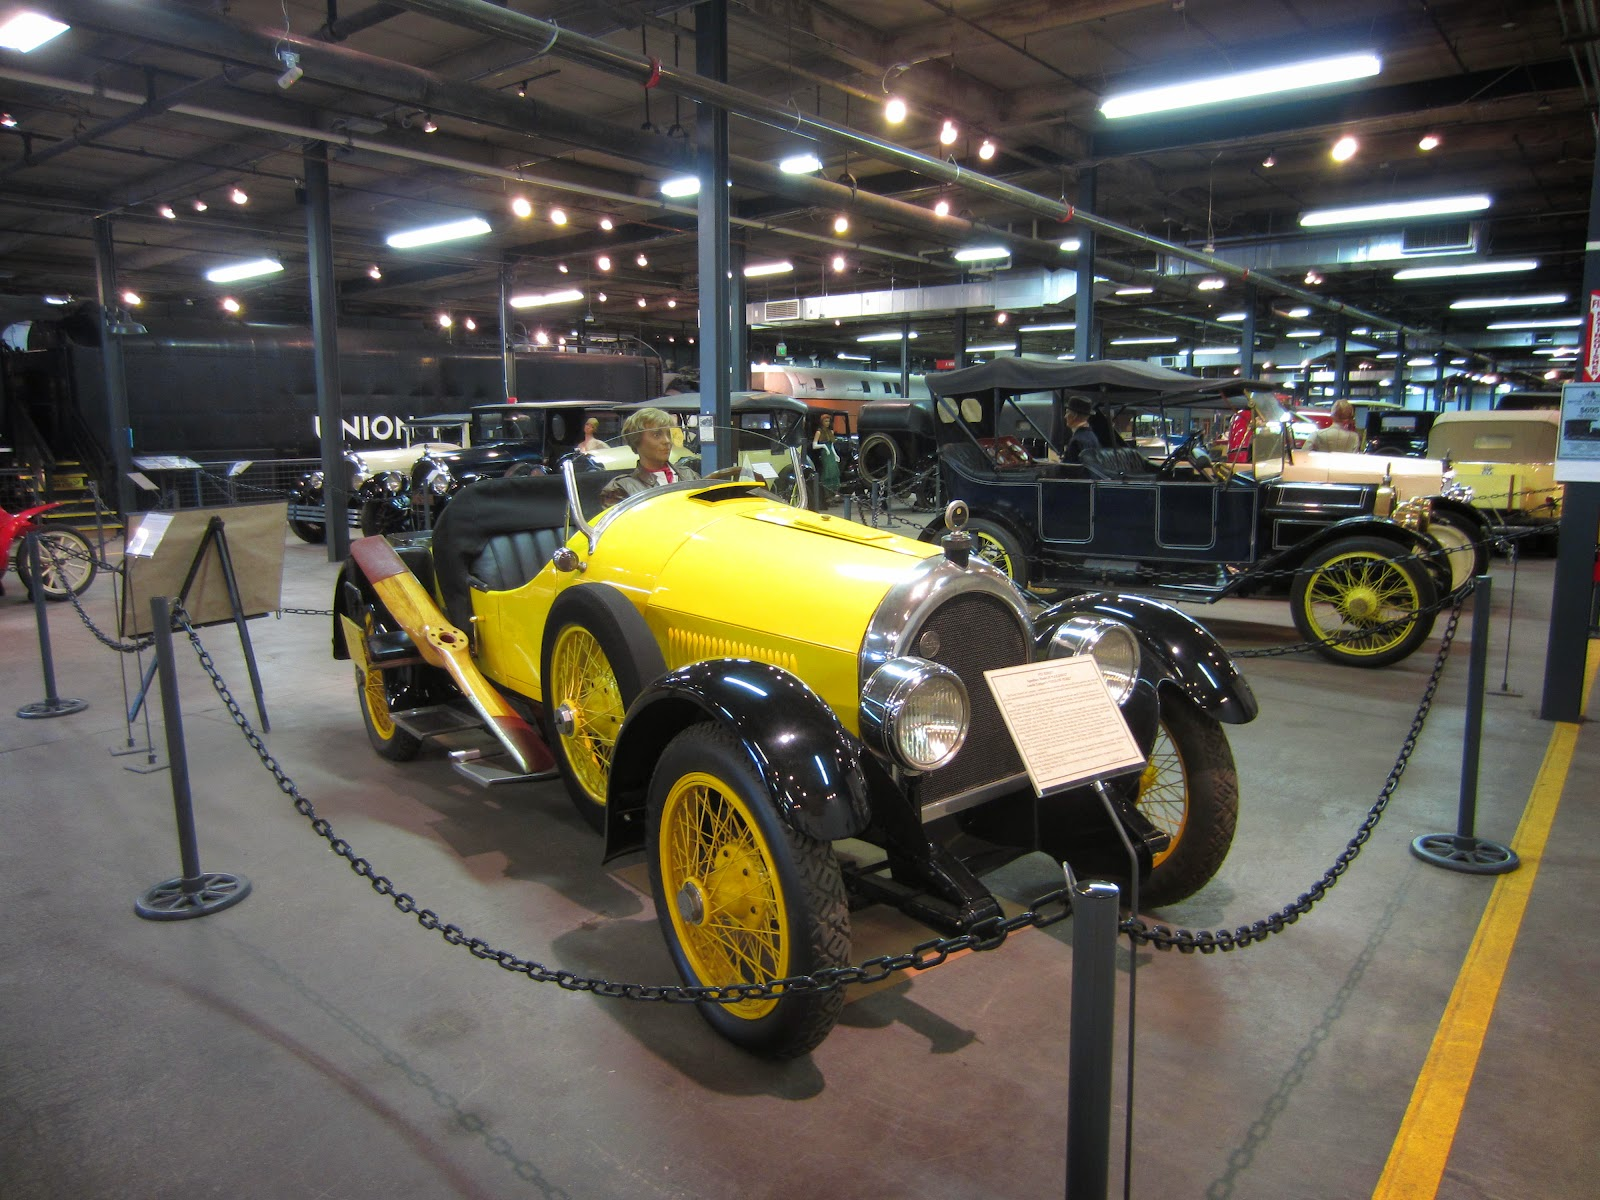 45 roadster http www forneymuseum org fe_ameliaearhartgoldbug html kissell is a relatively obscure american car manufacturer but forney has almost a